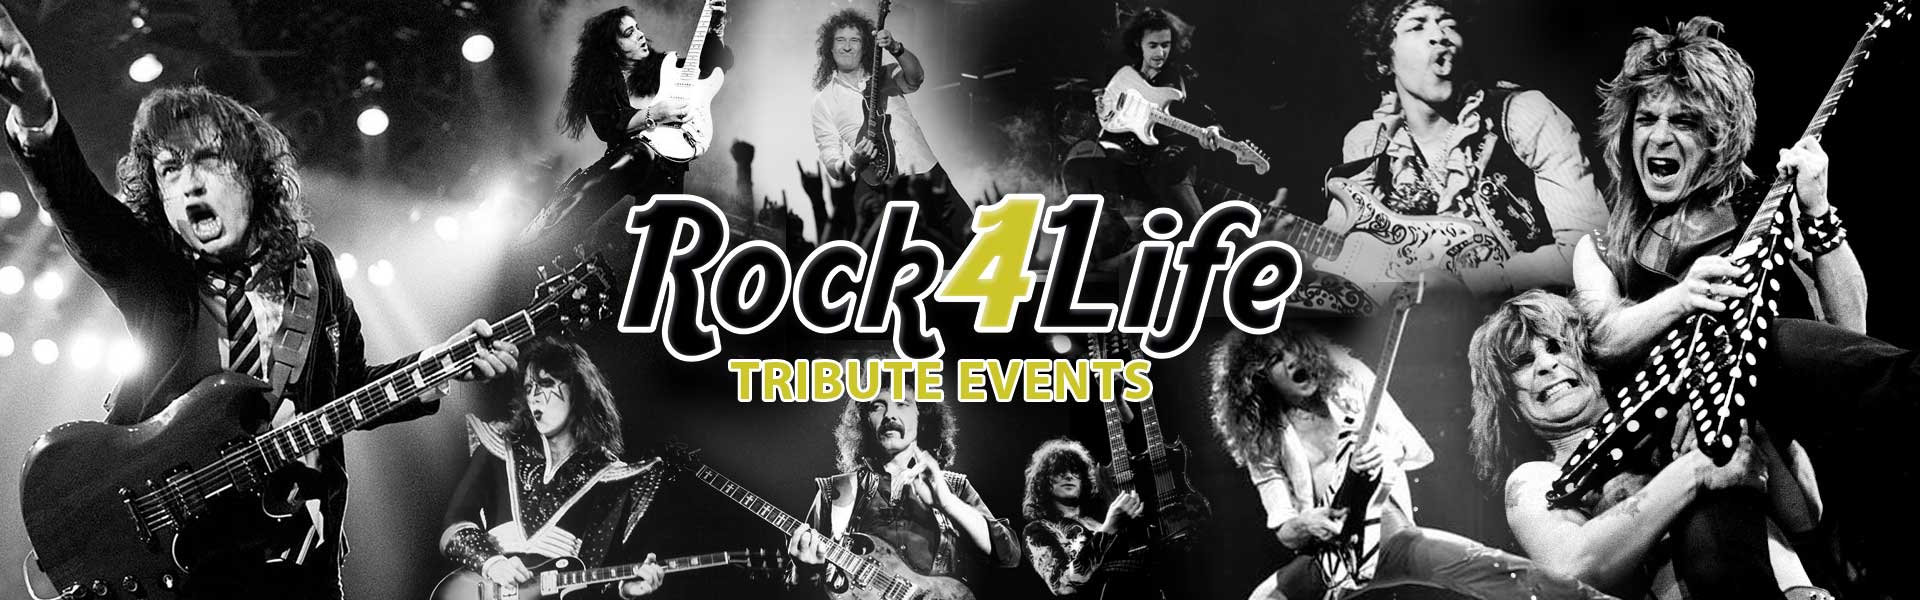 rock4life_tribute_events